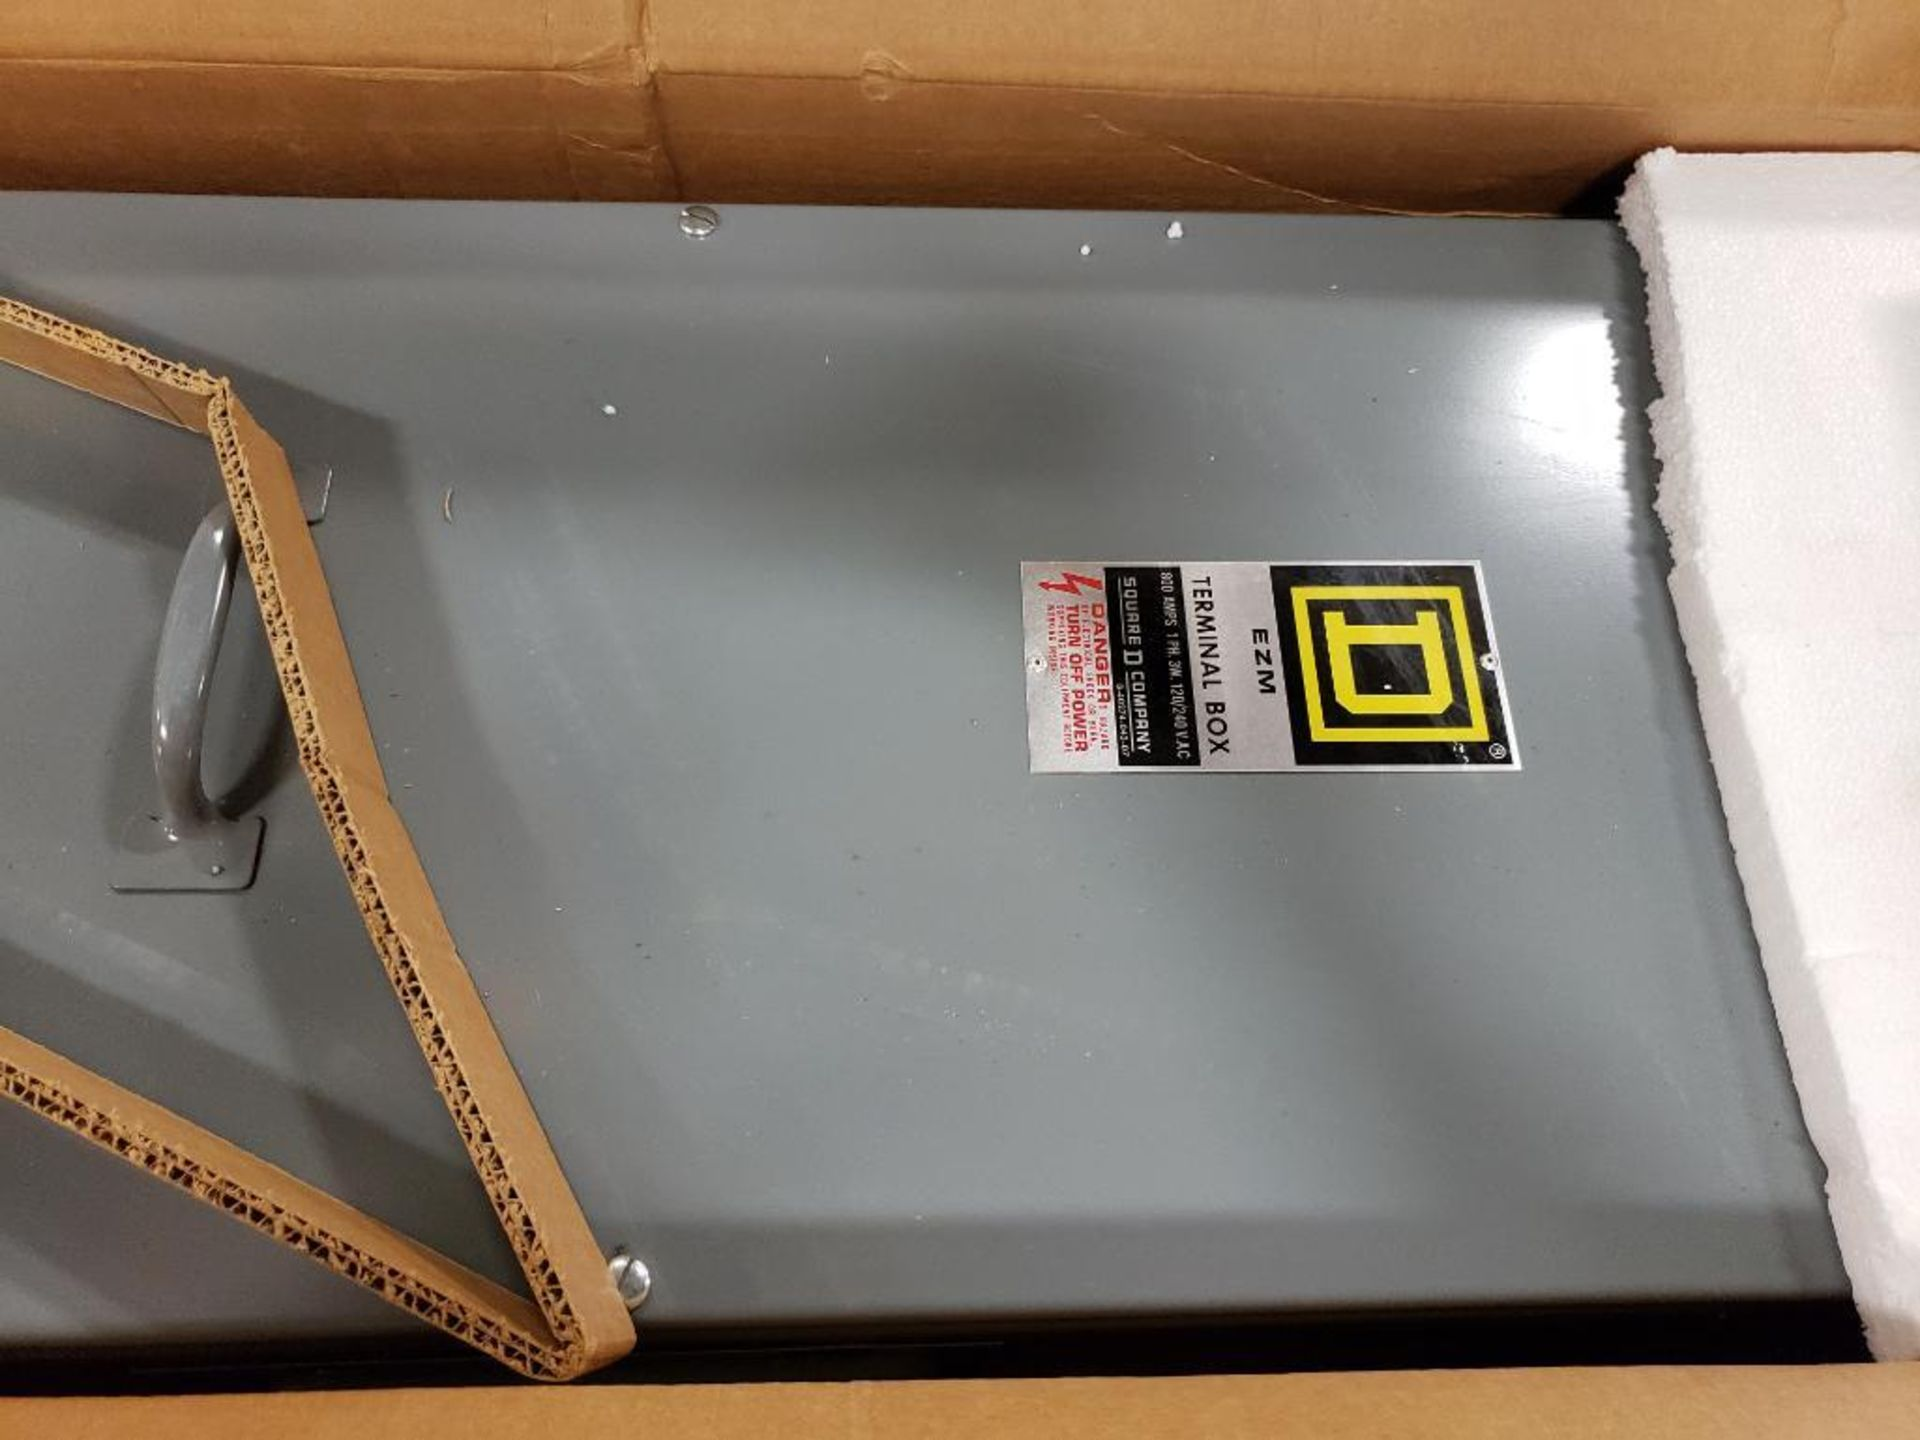 Square-D EZM Terminal Box EZM-3800TBR. New in Box. - Image 4 of 6